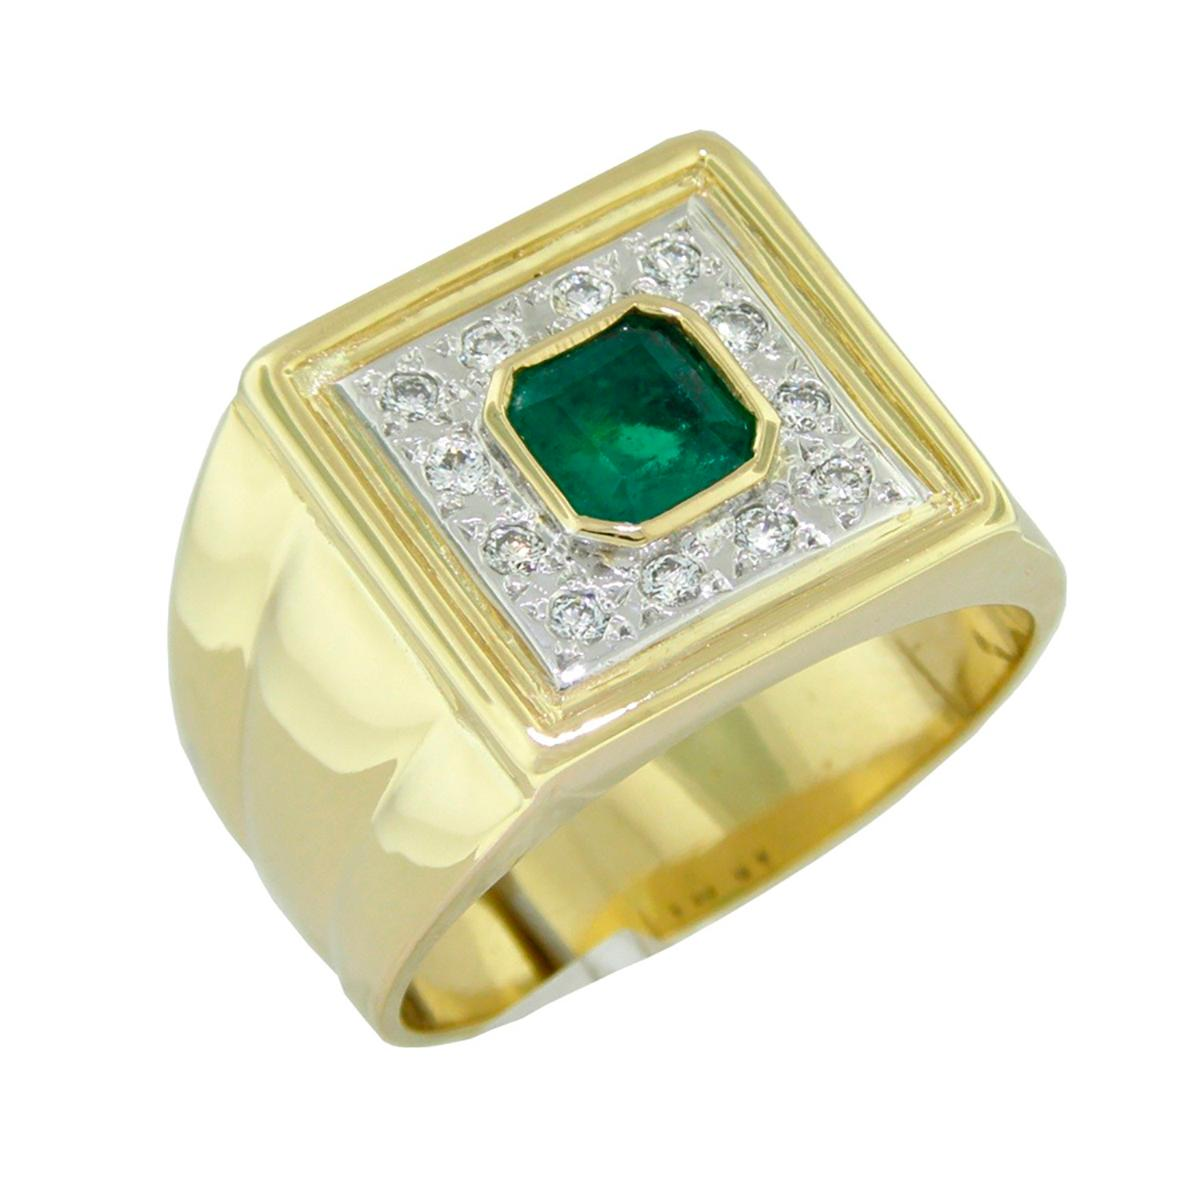 2-tones-emerald-and-diamond-mens-ring-in-18k-gold